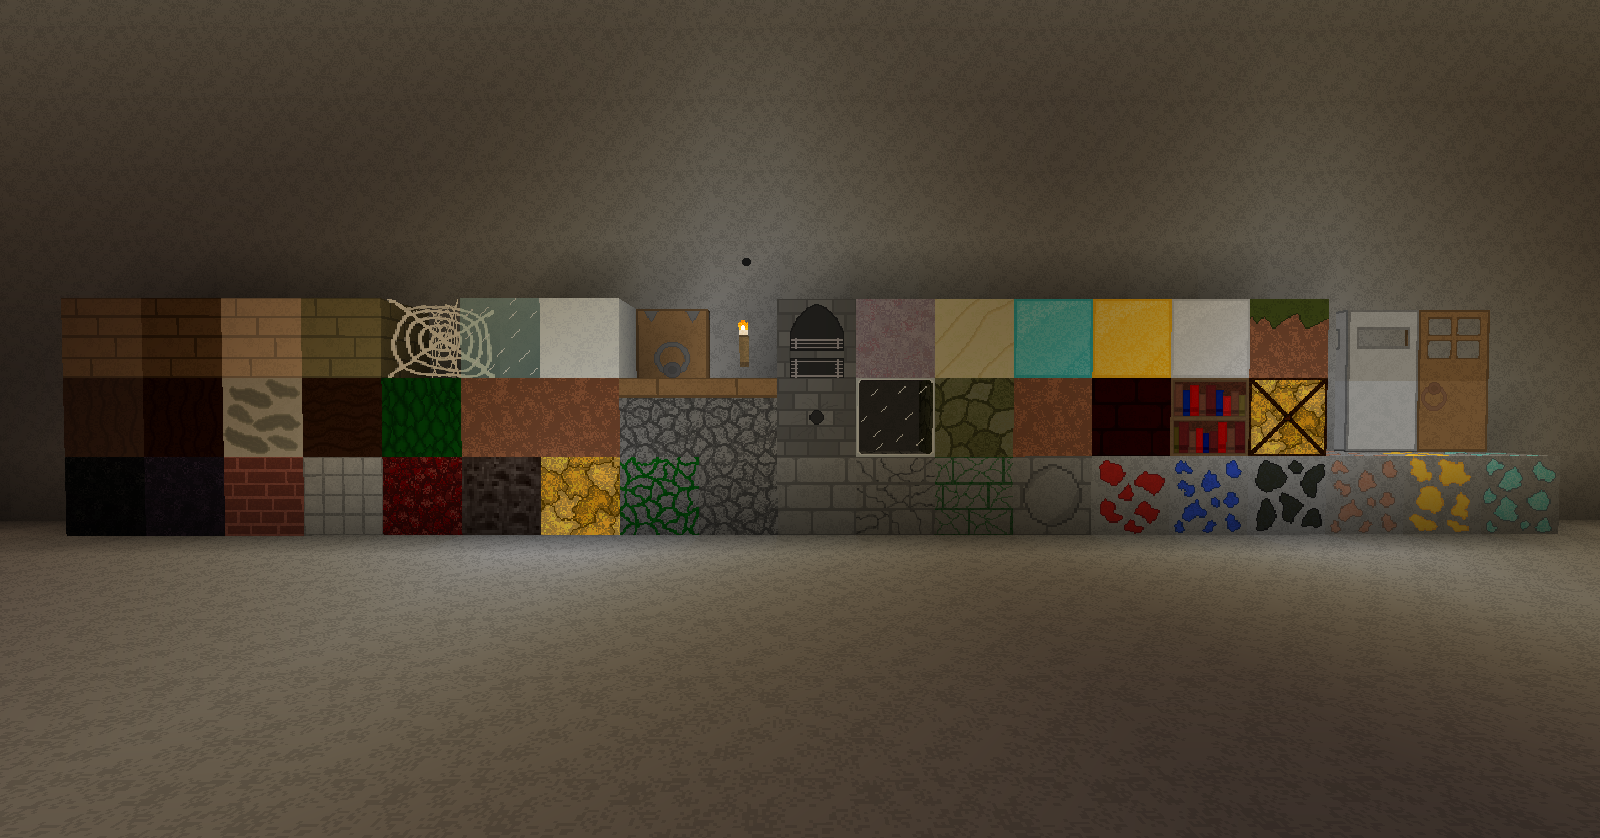 http://minecraft-forum.net/wp-content/uploads/2012/12/816c4__Smoothcraft-texture-pack.png